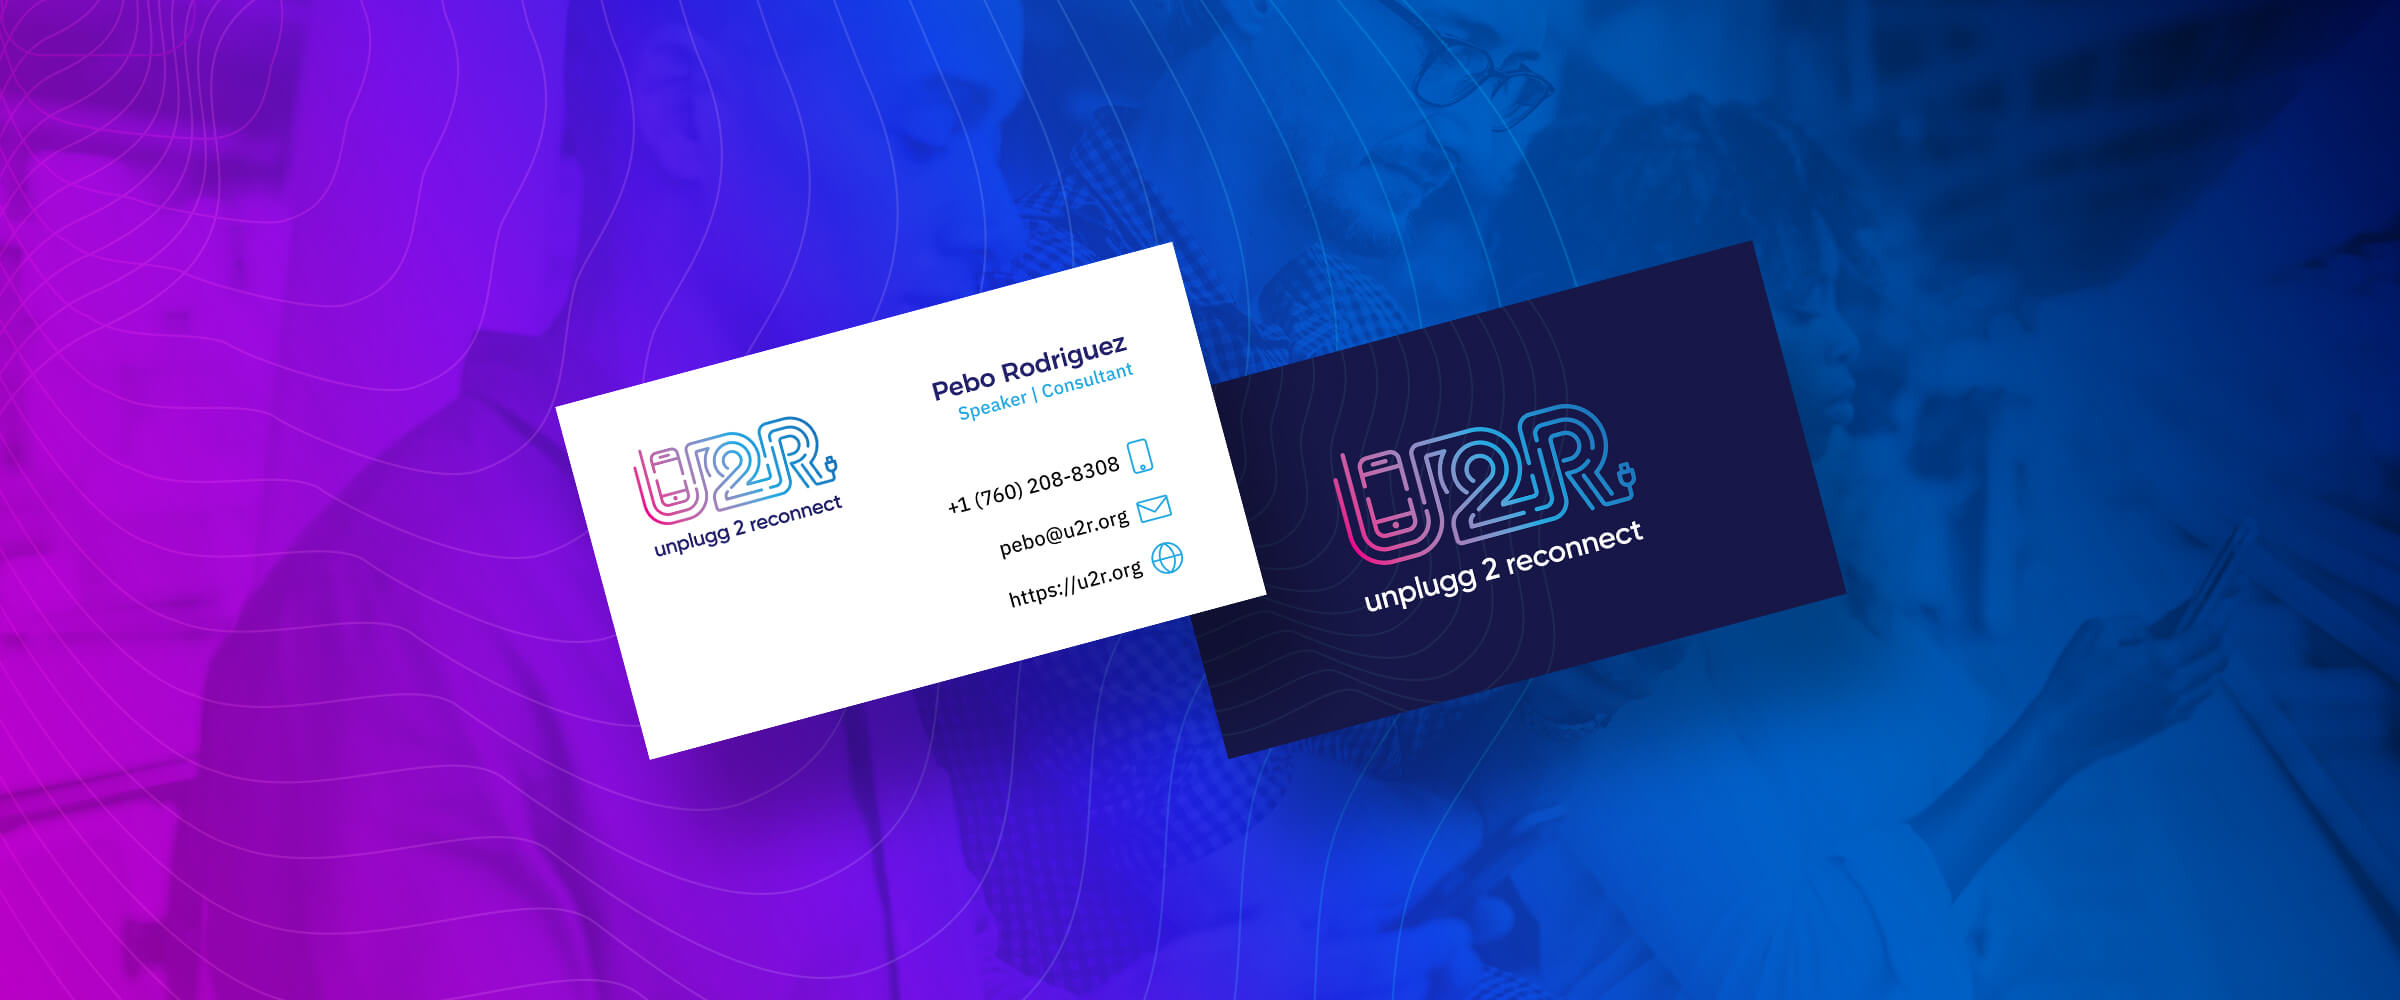 U2R-Logo-Presentation-5-Business-Card